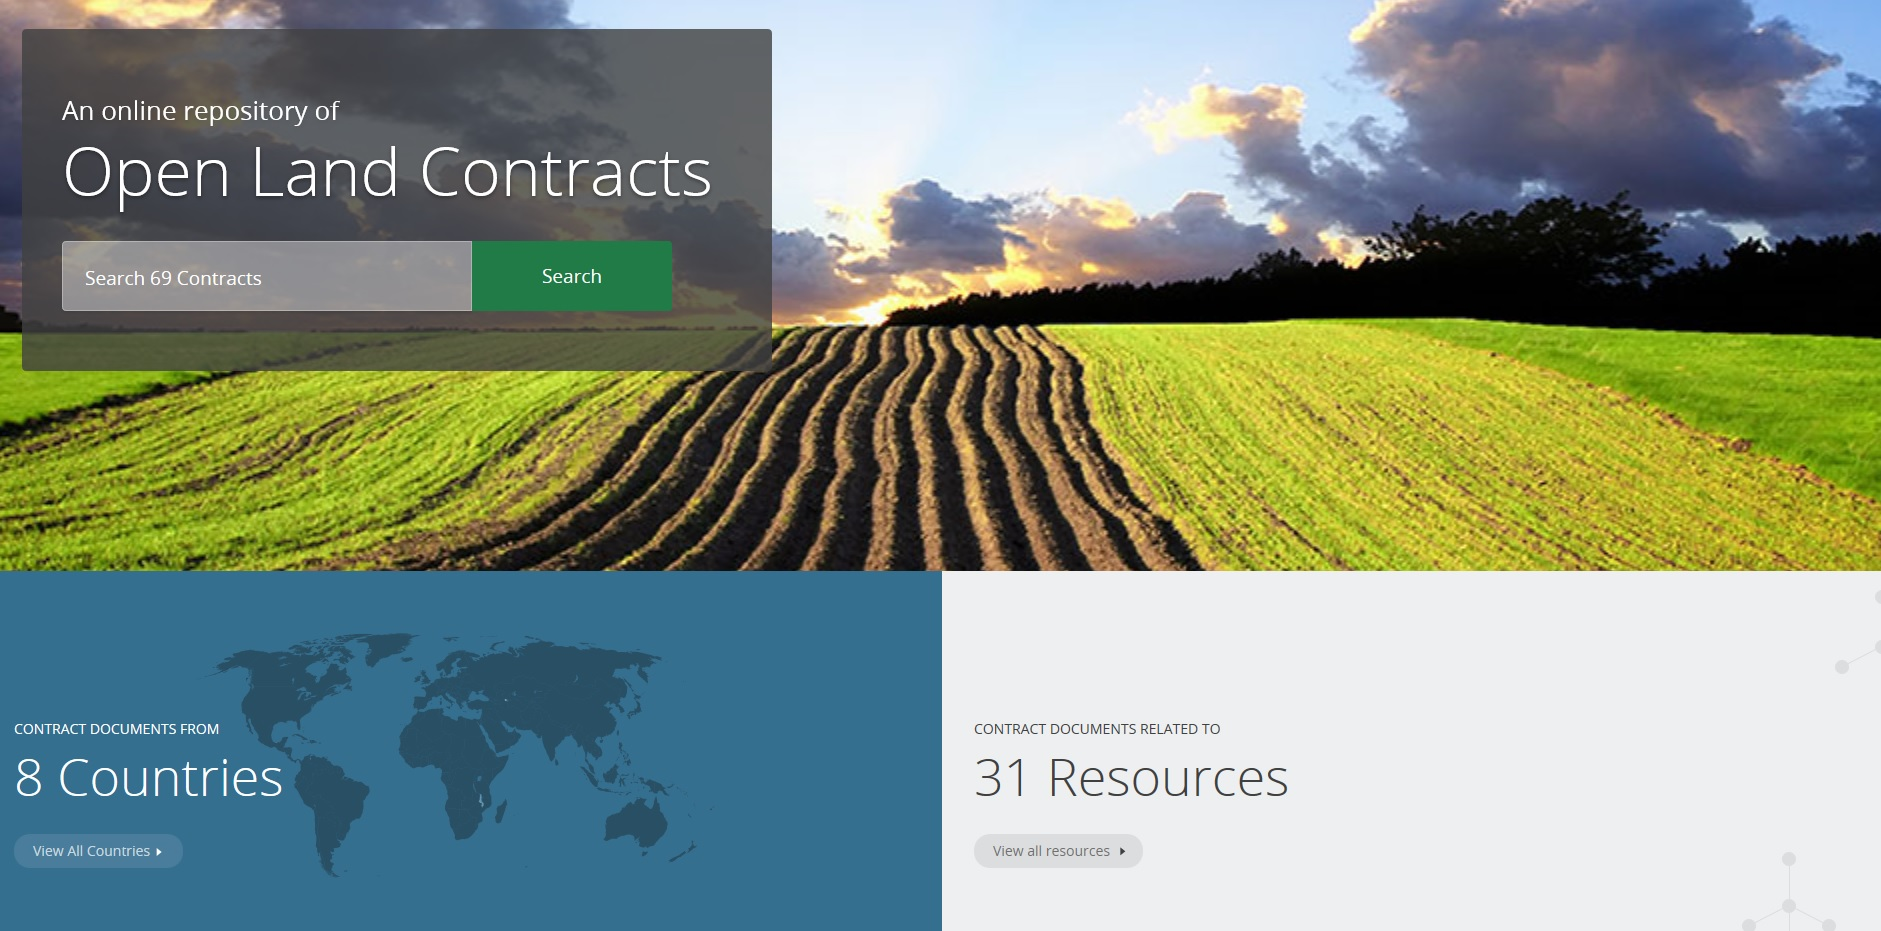 The new OpenLandContracts.org database cover image